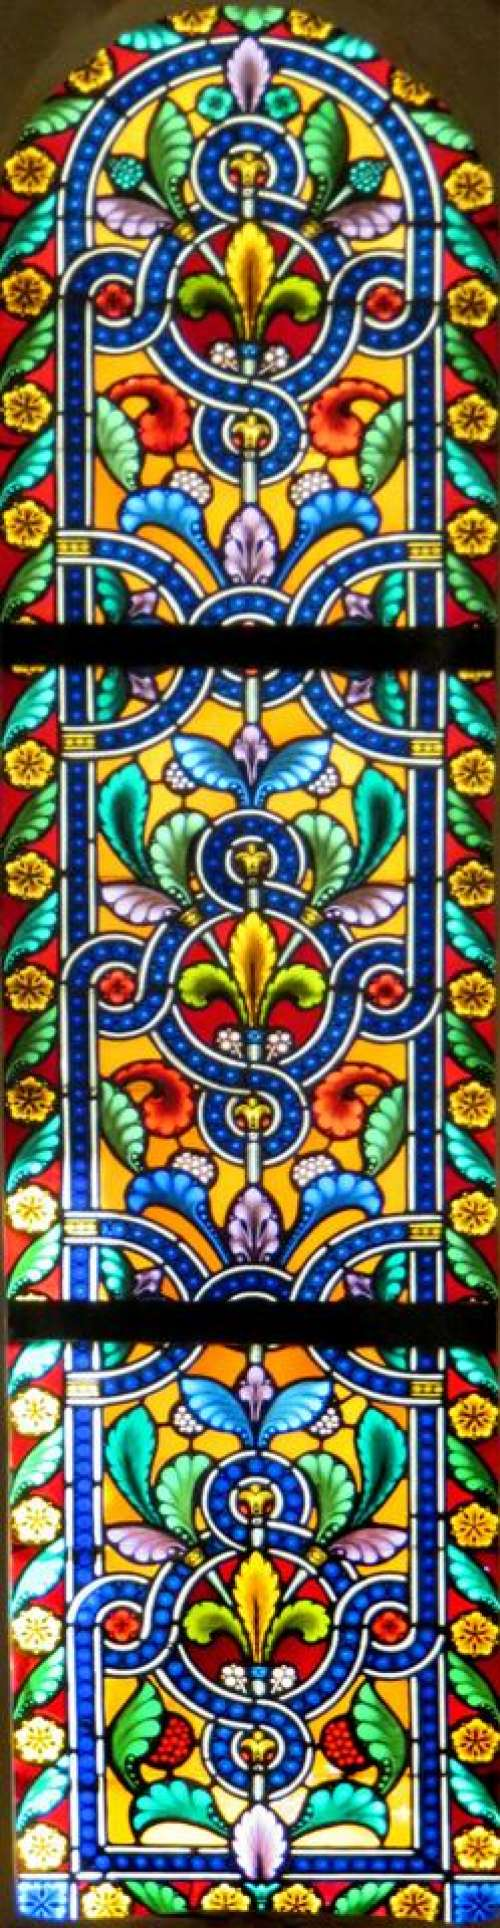 stained glass design colorful repeating